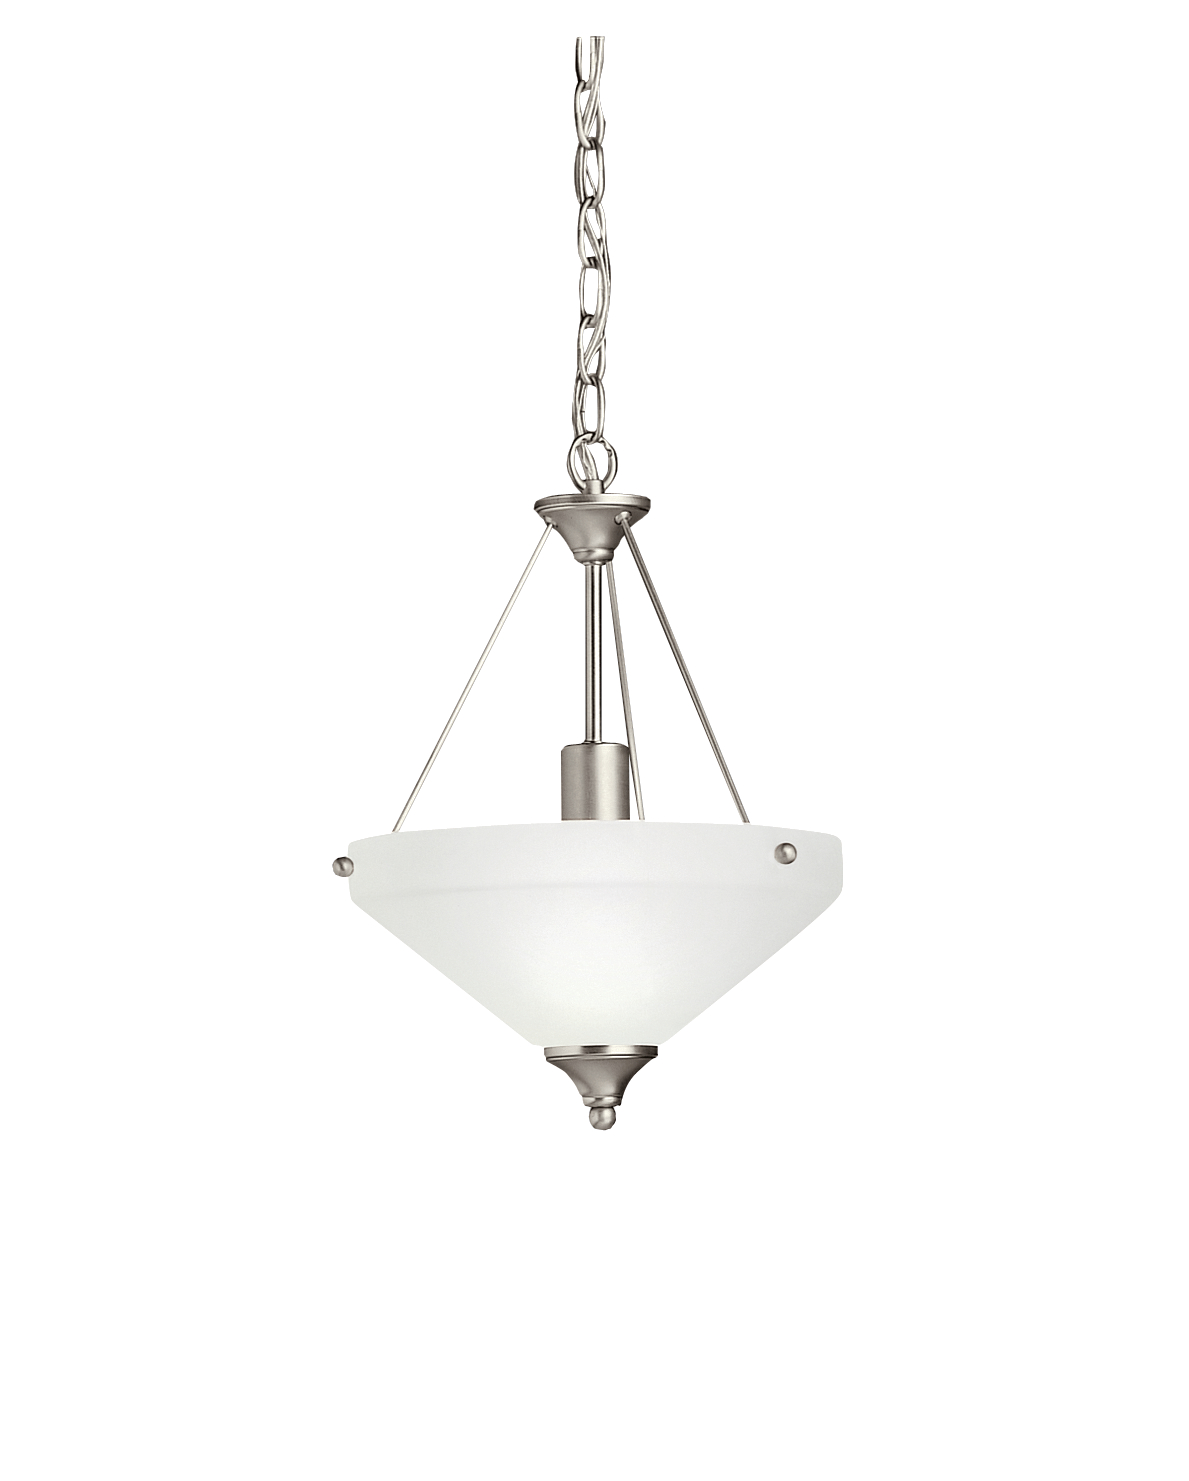 Kichler Ansonia Pendant Light with Satin Etched Shade - Brushed Nickel (3348NI)